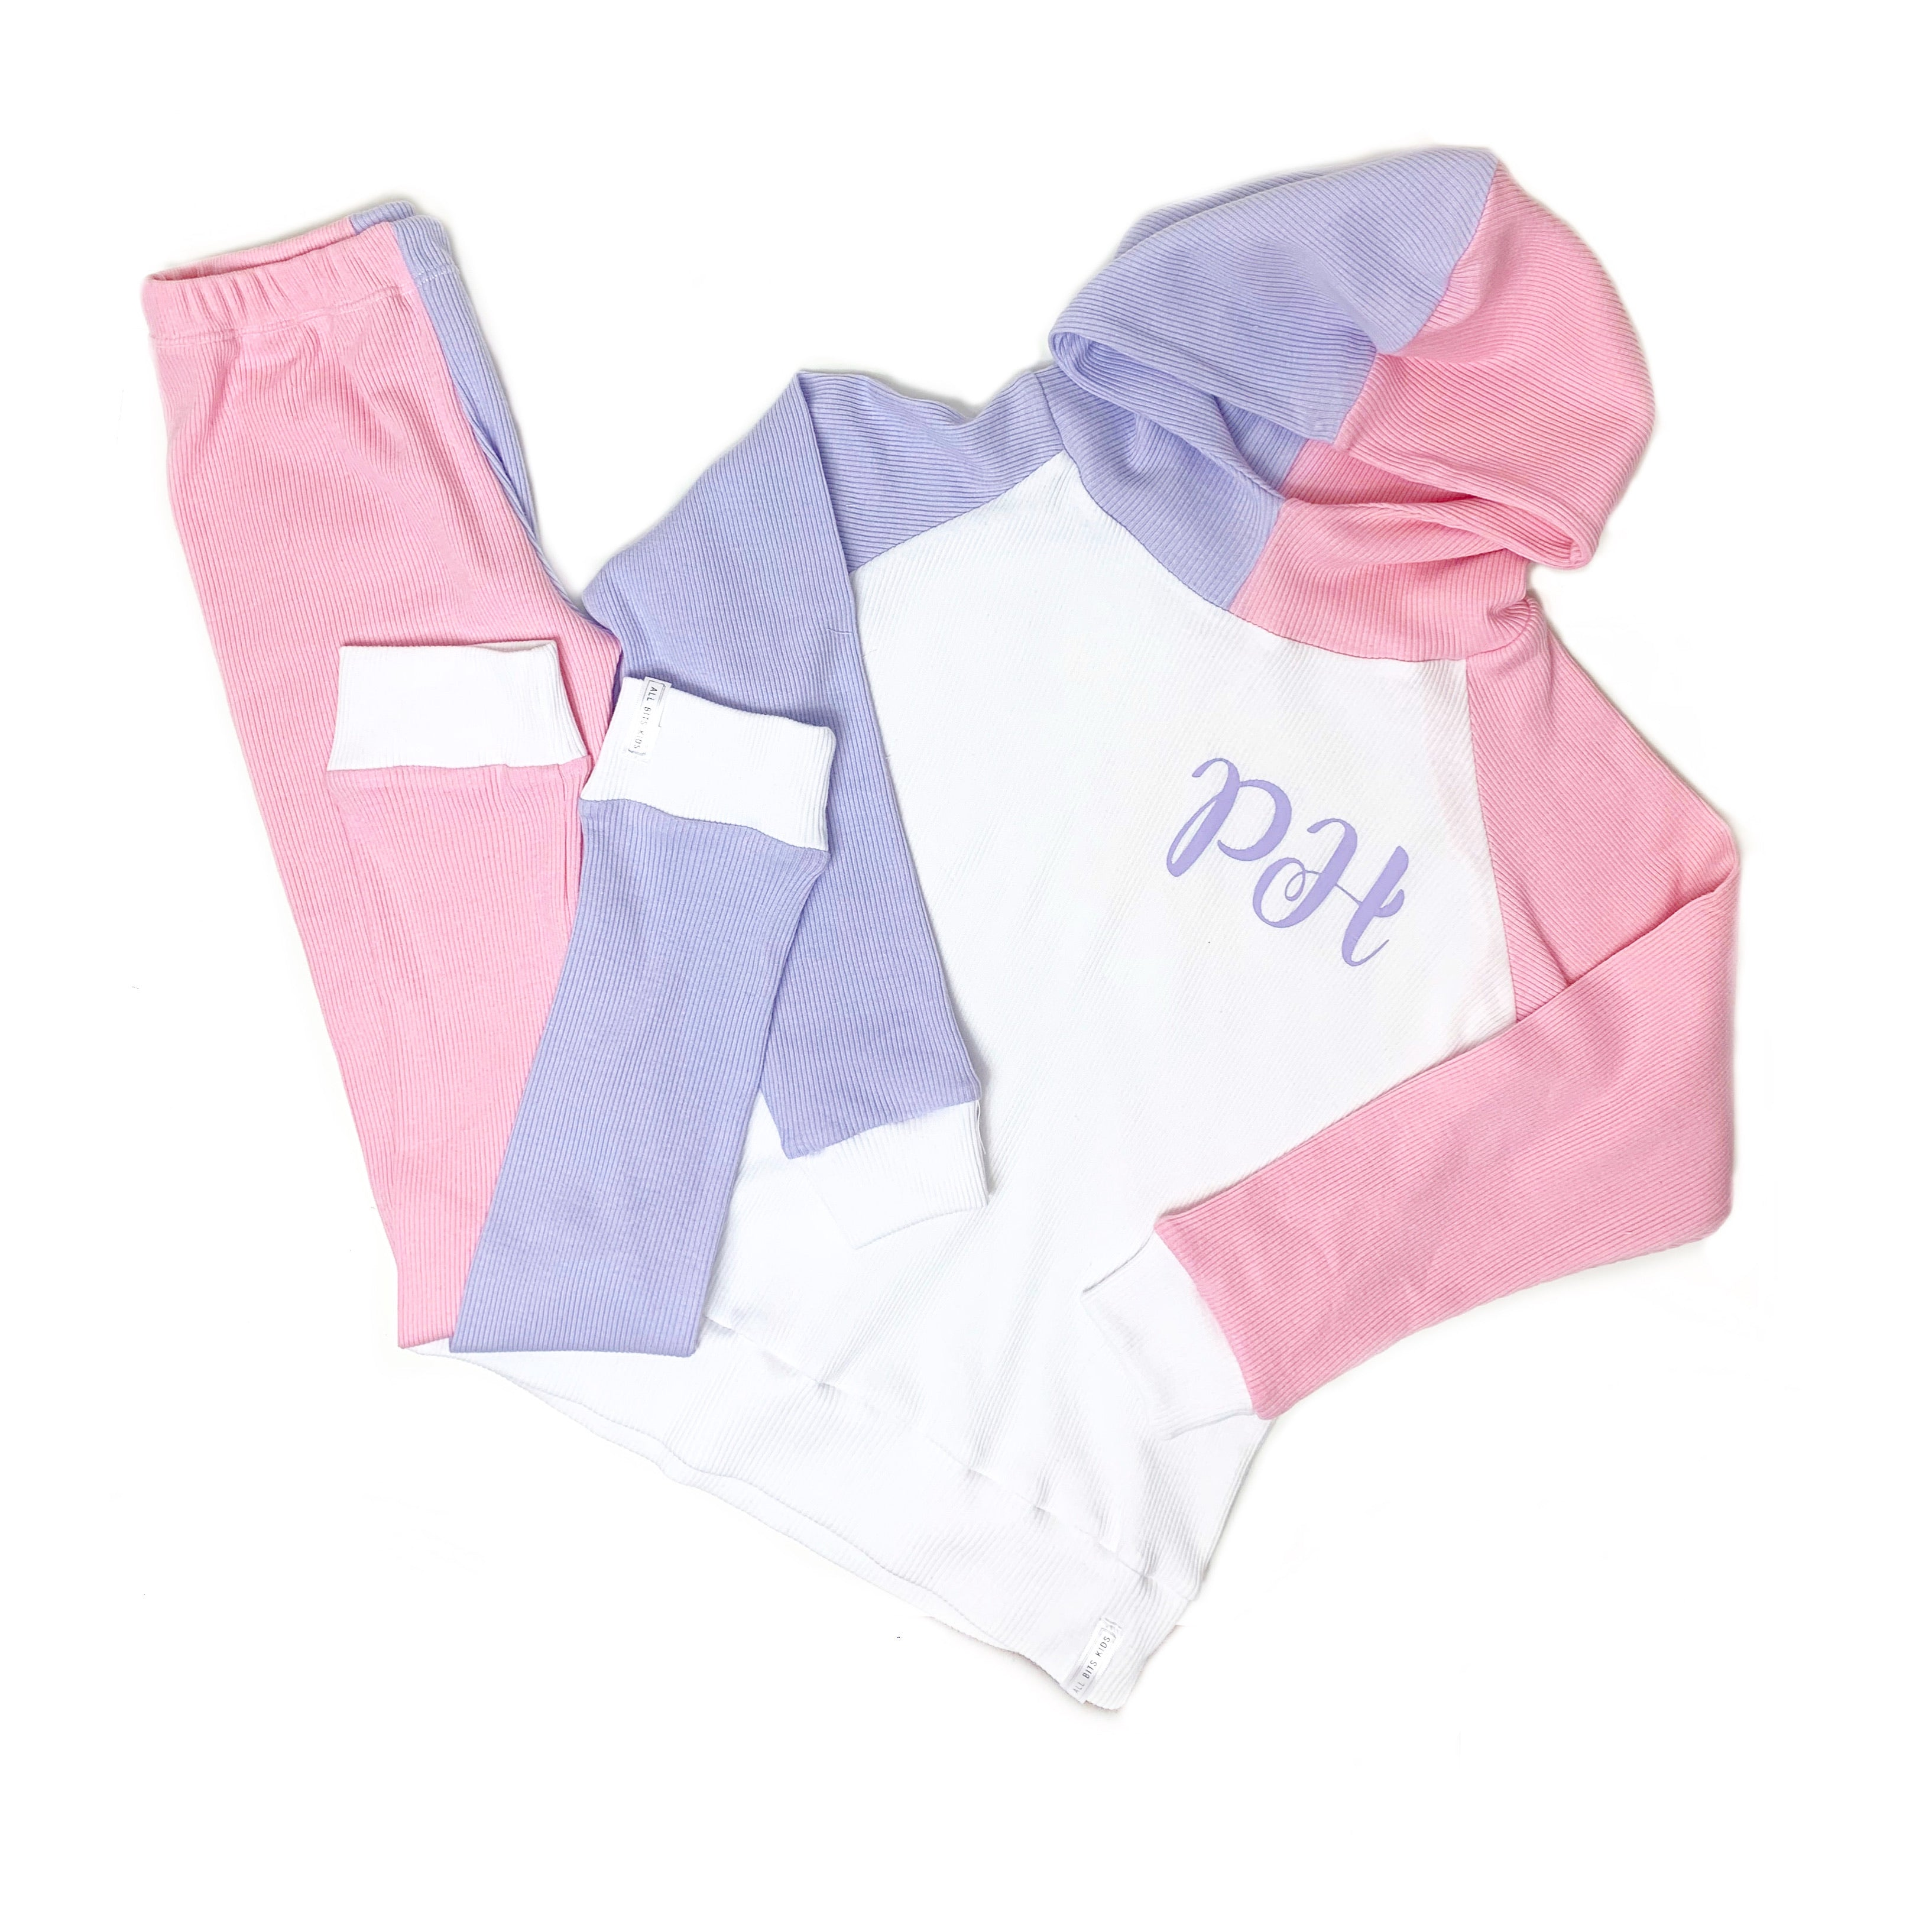 Multi Colour way lounge Hooded set